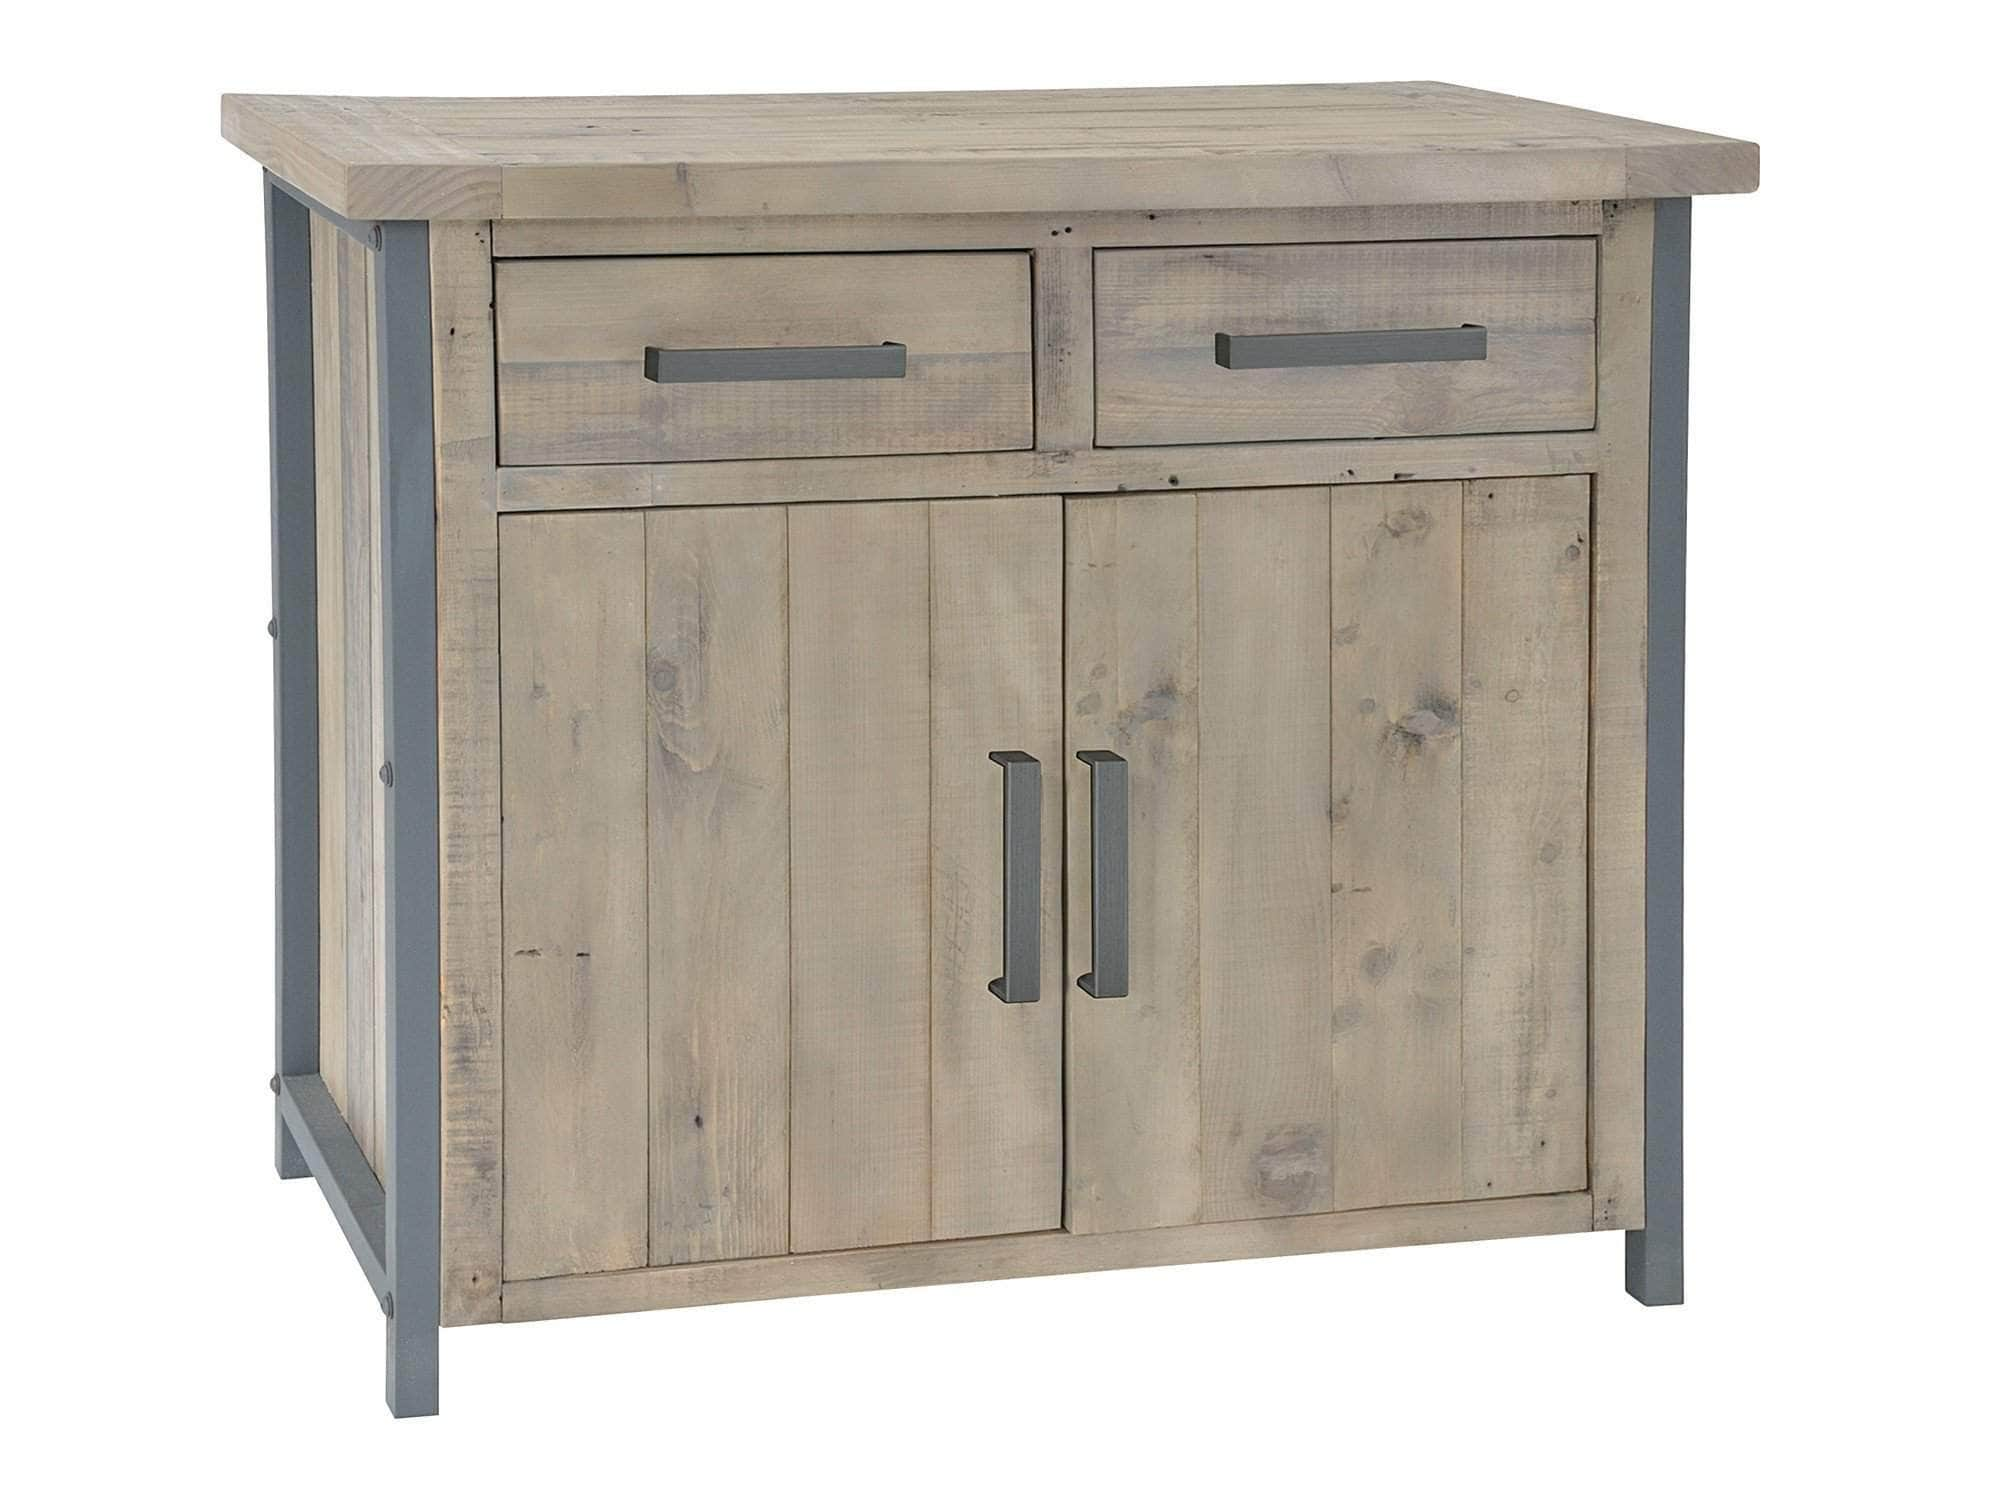 Small industrial sideboard made from reclaimed wood and steel, with two drawers and one cupboard